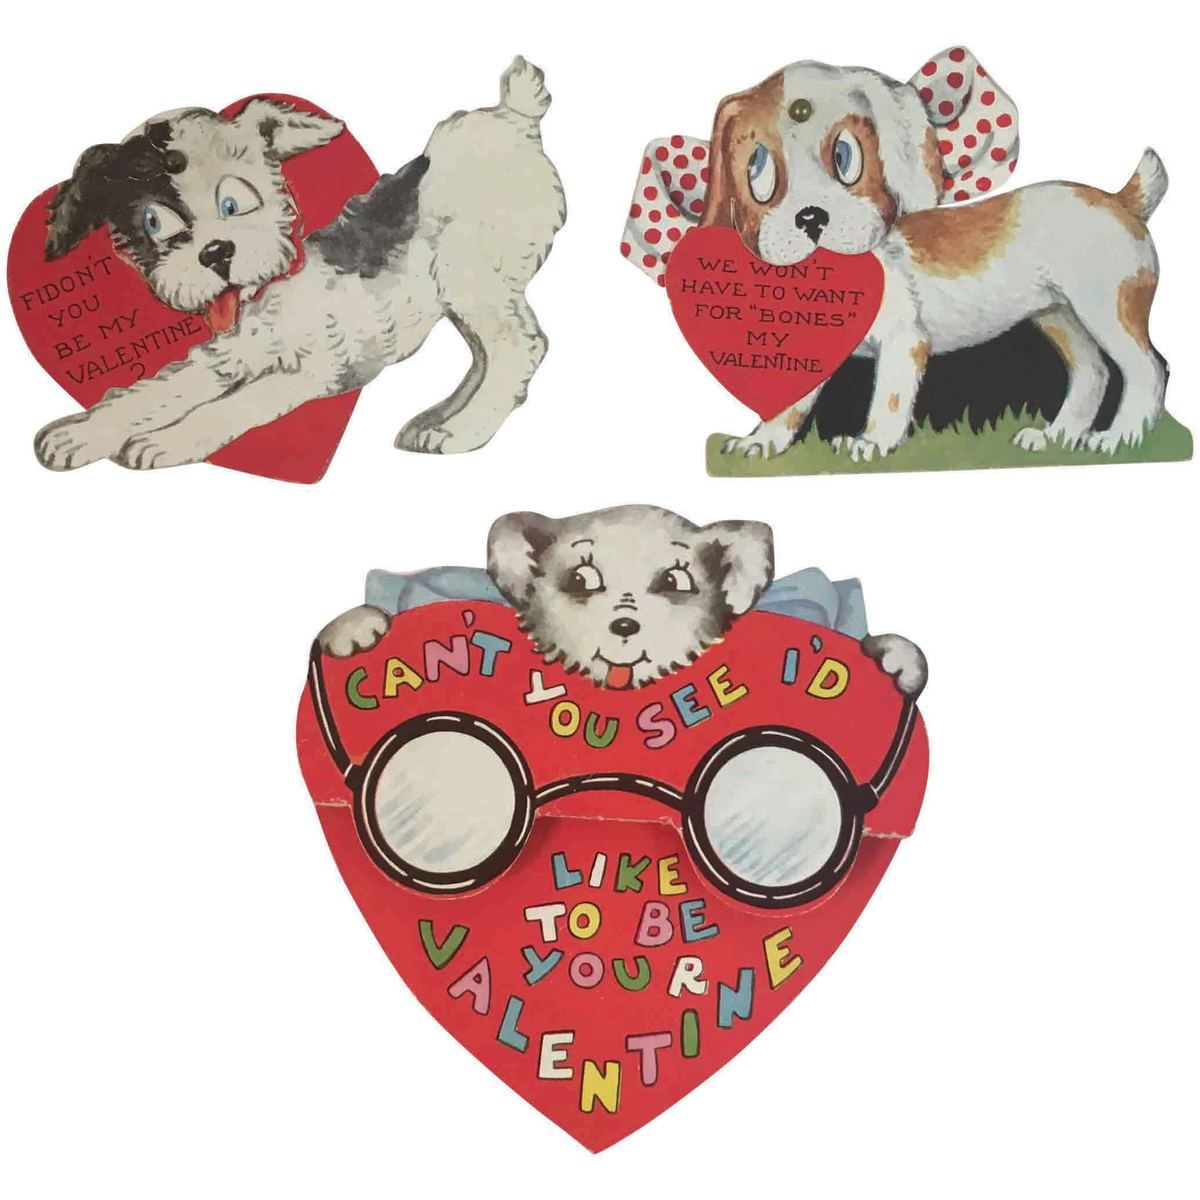 This is a cute group of dog-themed vintage valentines. The two smaller ones at the top are mechanical with movable pieces that make the eyes move. The larger one with the heart is somewhat 3D, with the eyeglasses popping up slightly in the way that it's folded; $12.